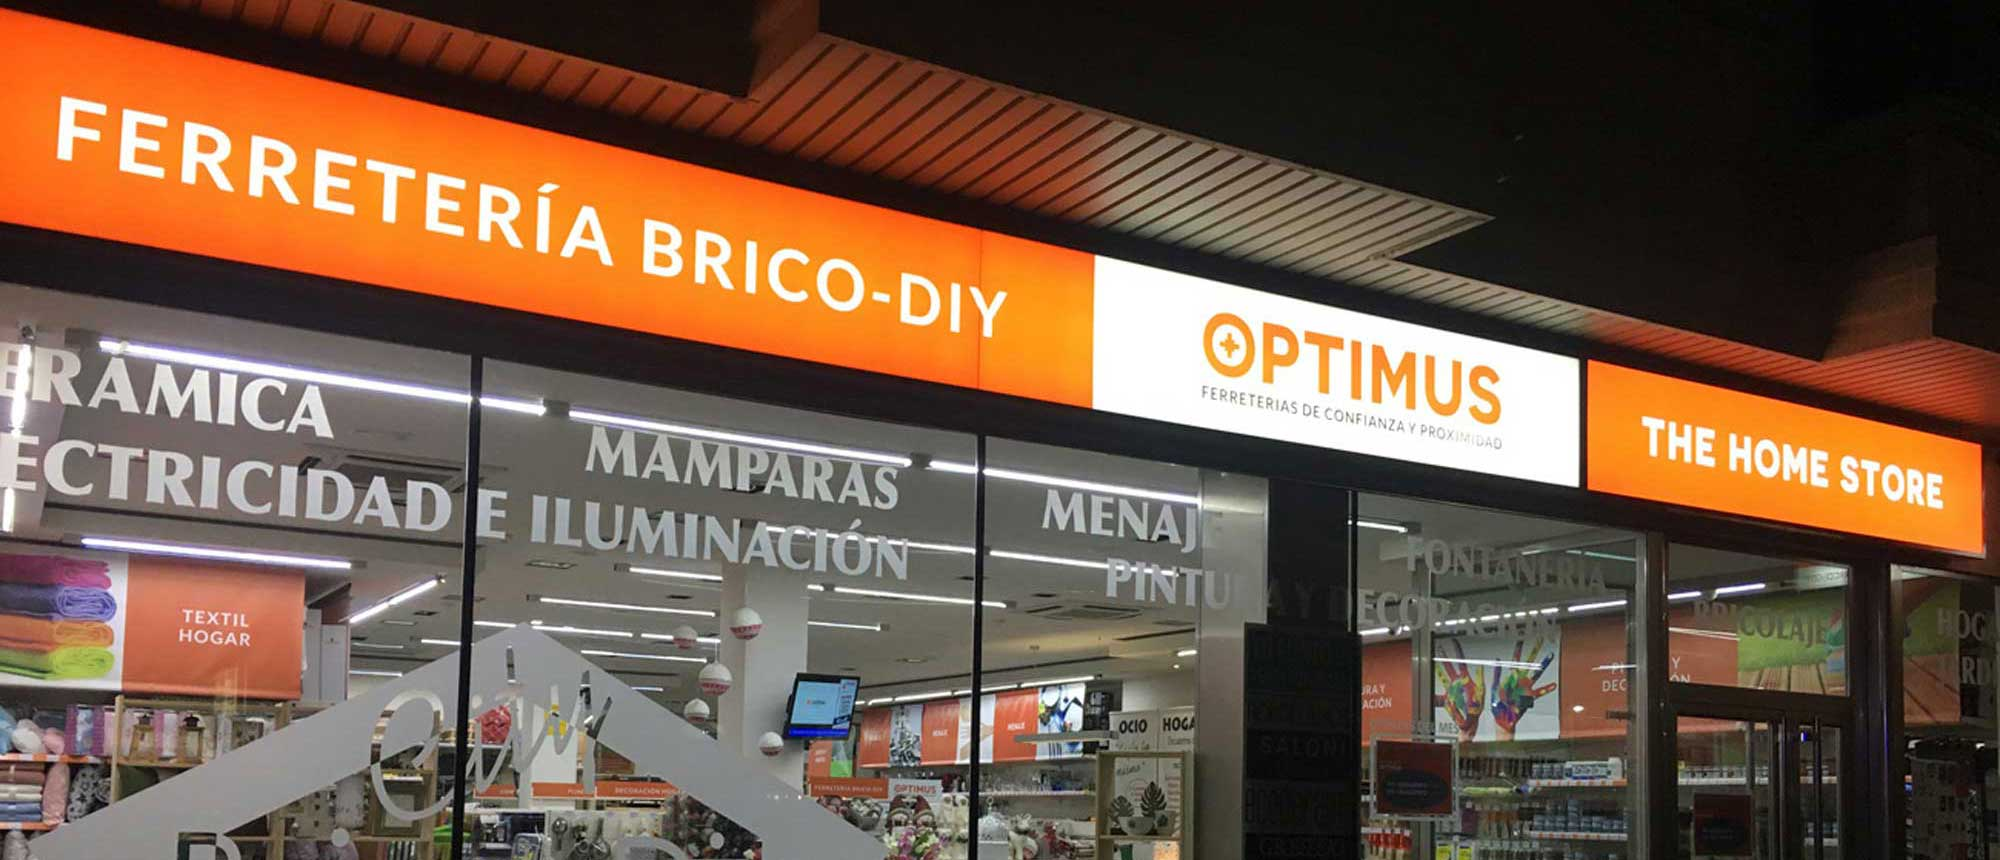 BRICO-DIY  THE HOME STORE